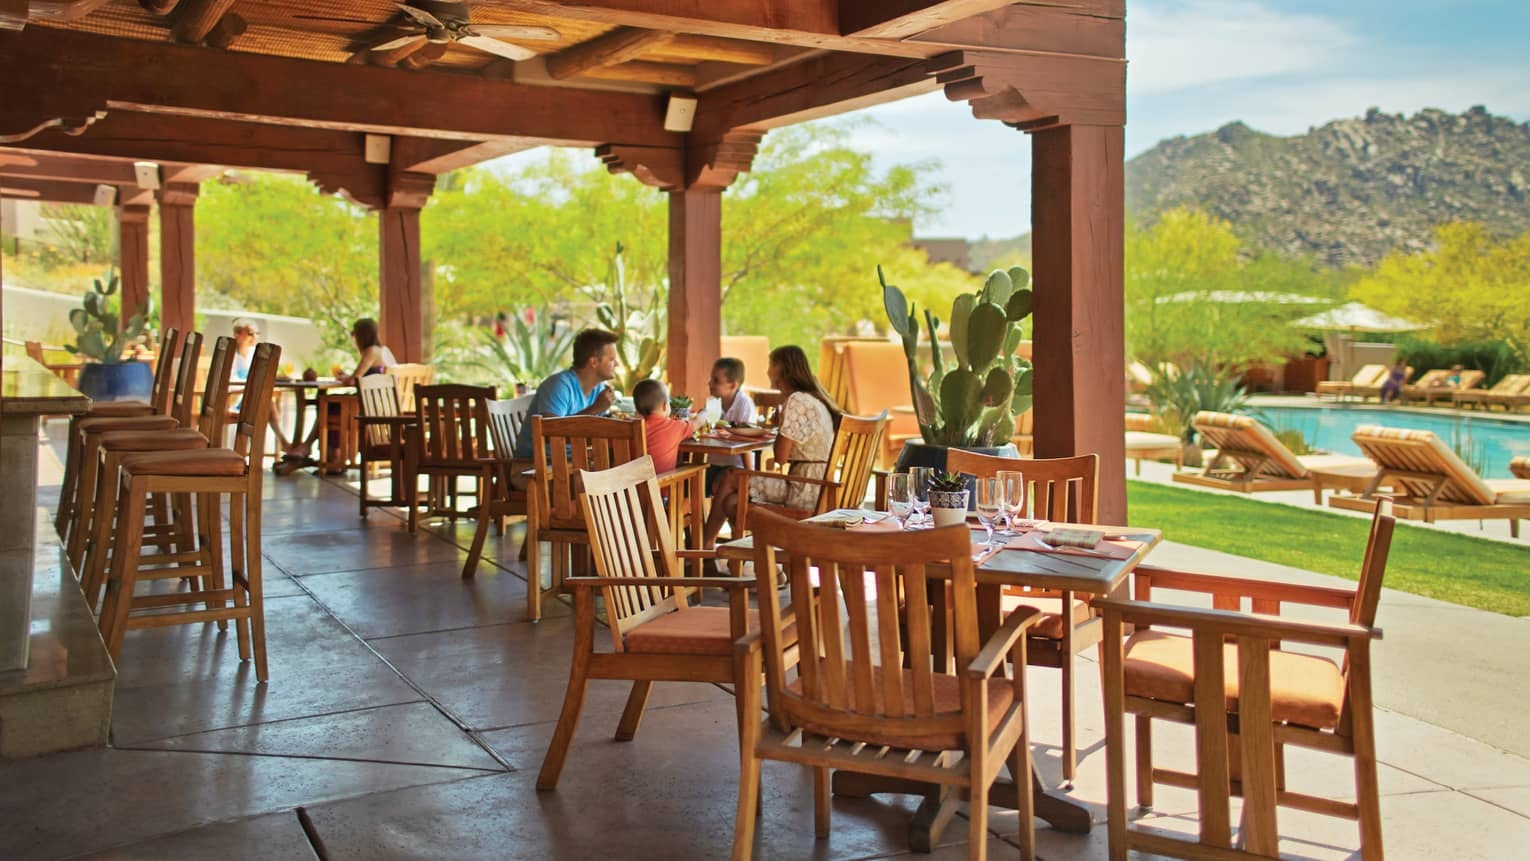 Families dining on Saguaro Blossom patio under wood pergola near swimming pool, deck on sunny day